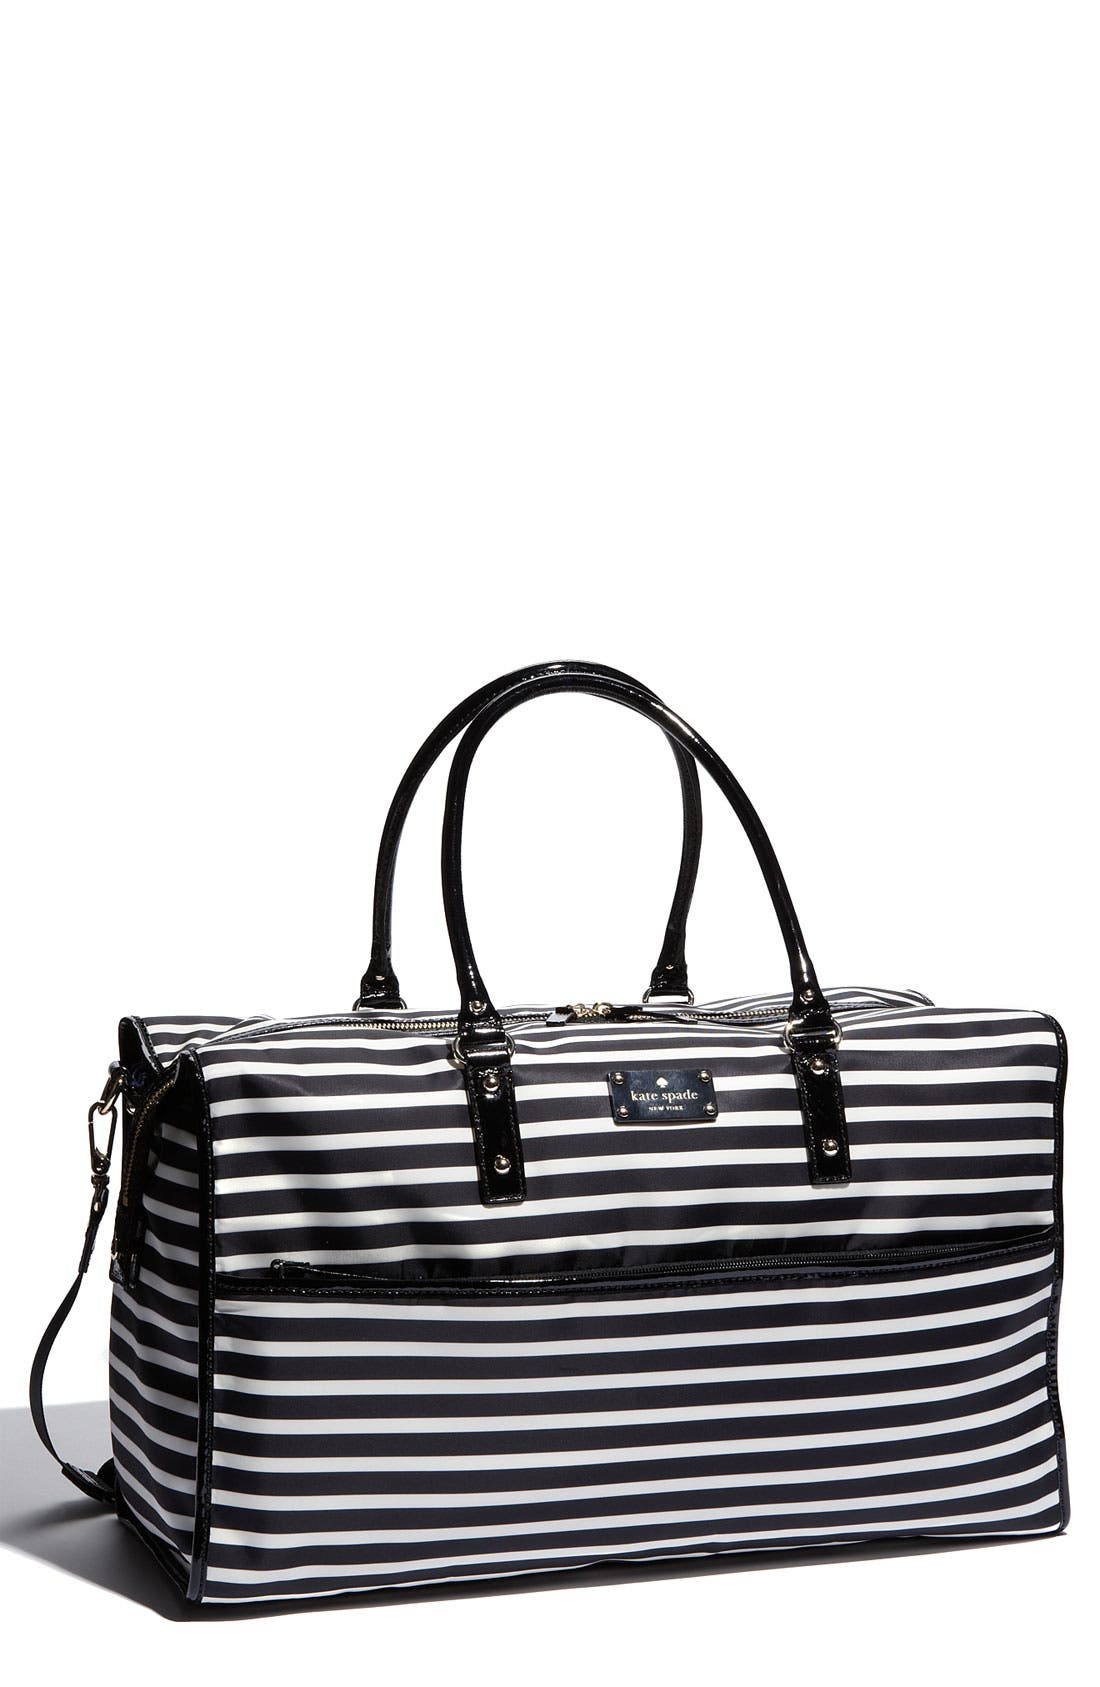 Main Image - kate spade new york 'adara' stripe nylon tote